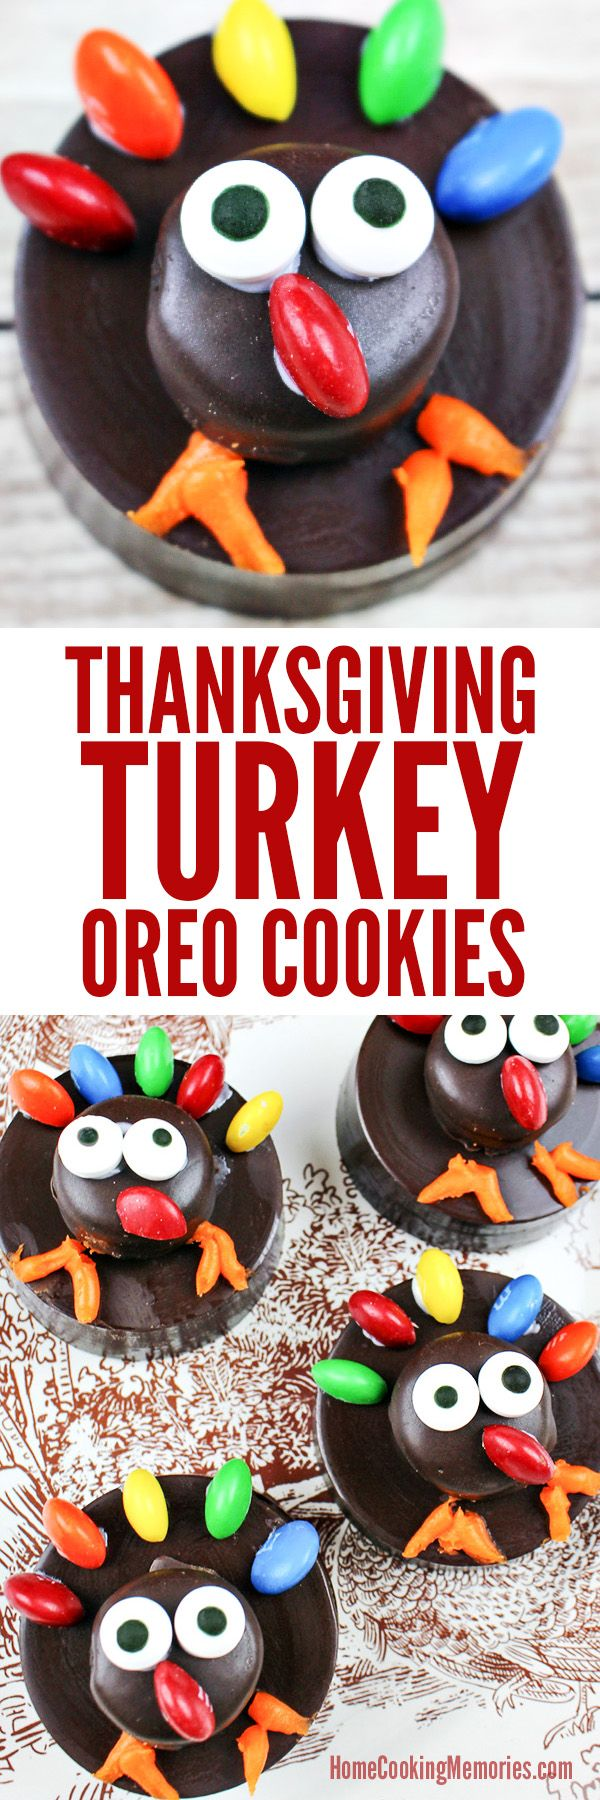 Fun & Easy Thanksgiving Turkey OREO Cookies! These cute (and slightly goofy) turkeys are great Thanksgiving food craft for kids and perfect for class parties, potlucks, or as part of your holiday table place settings. (turkey cookies for kids)